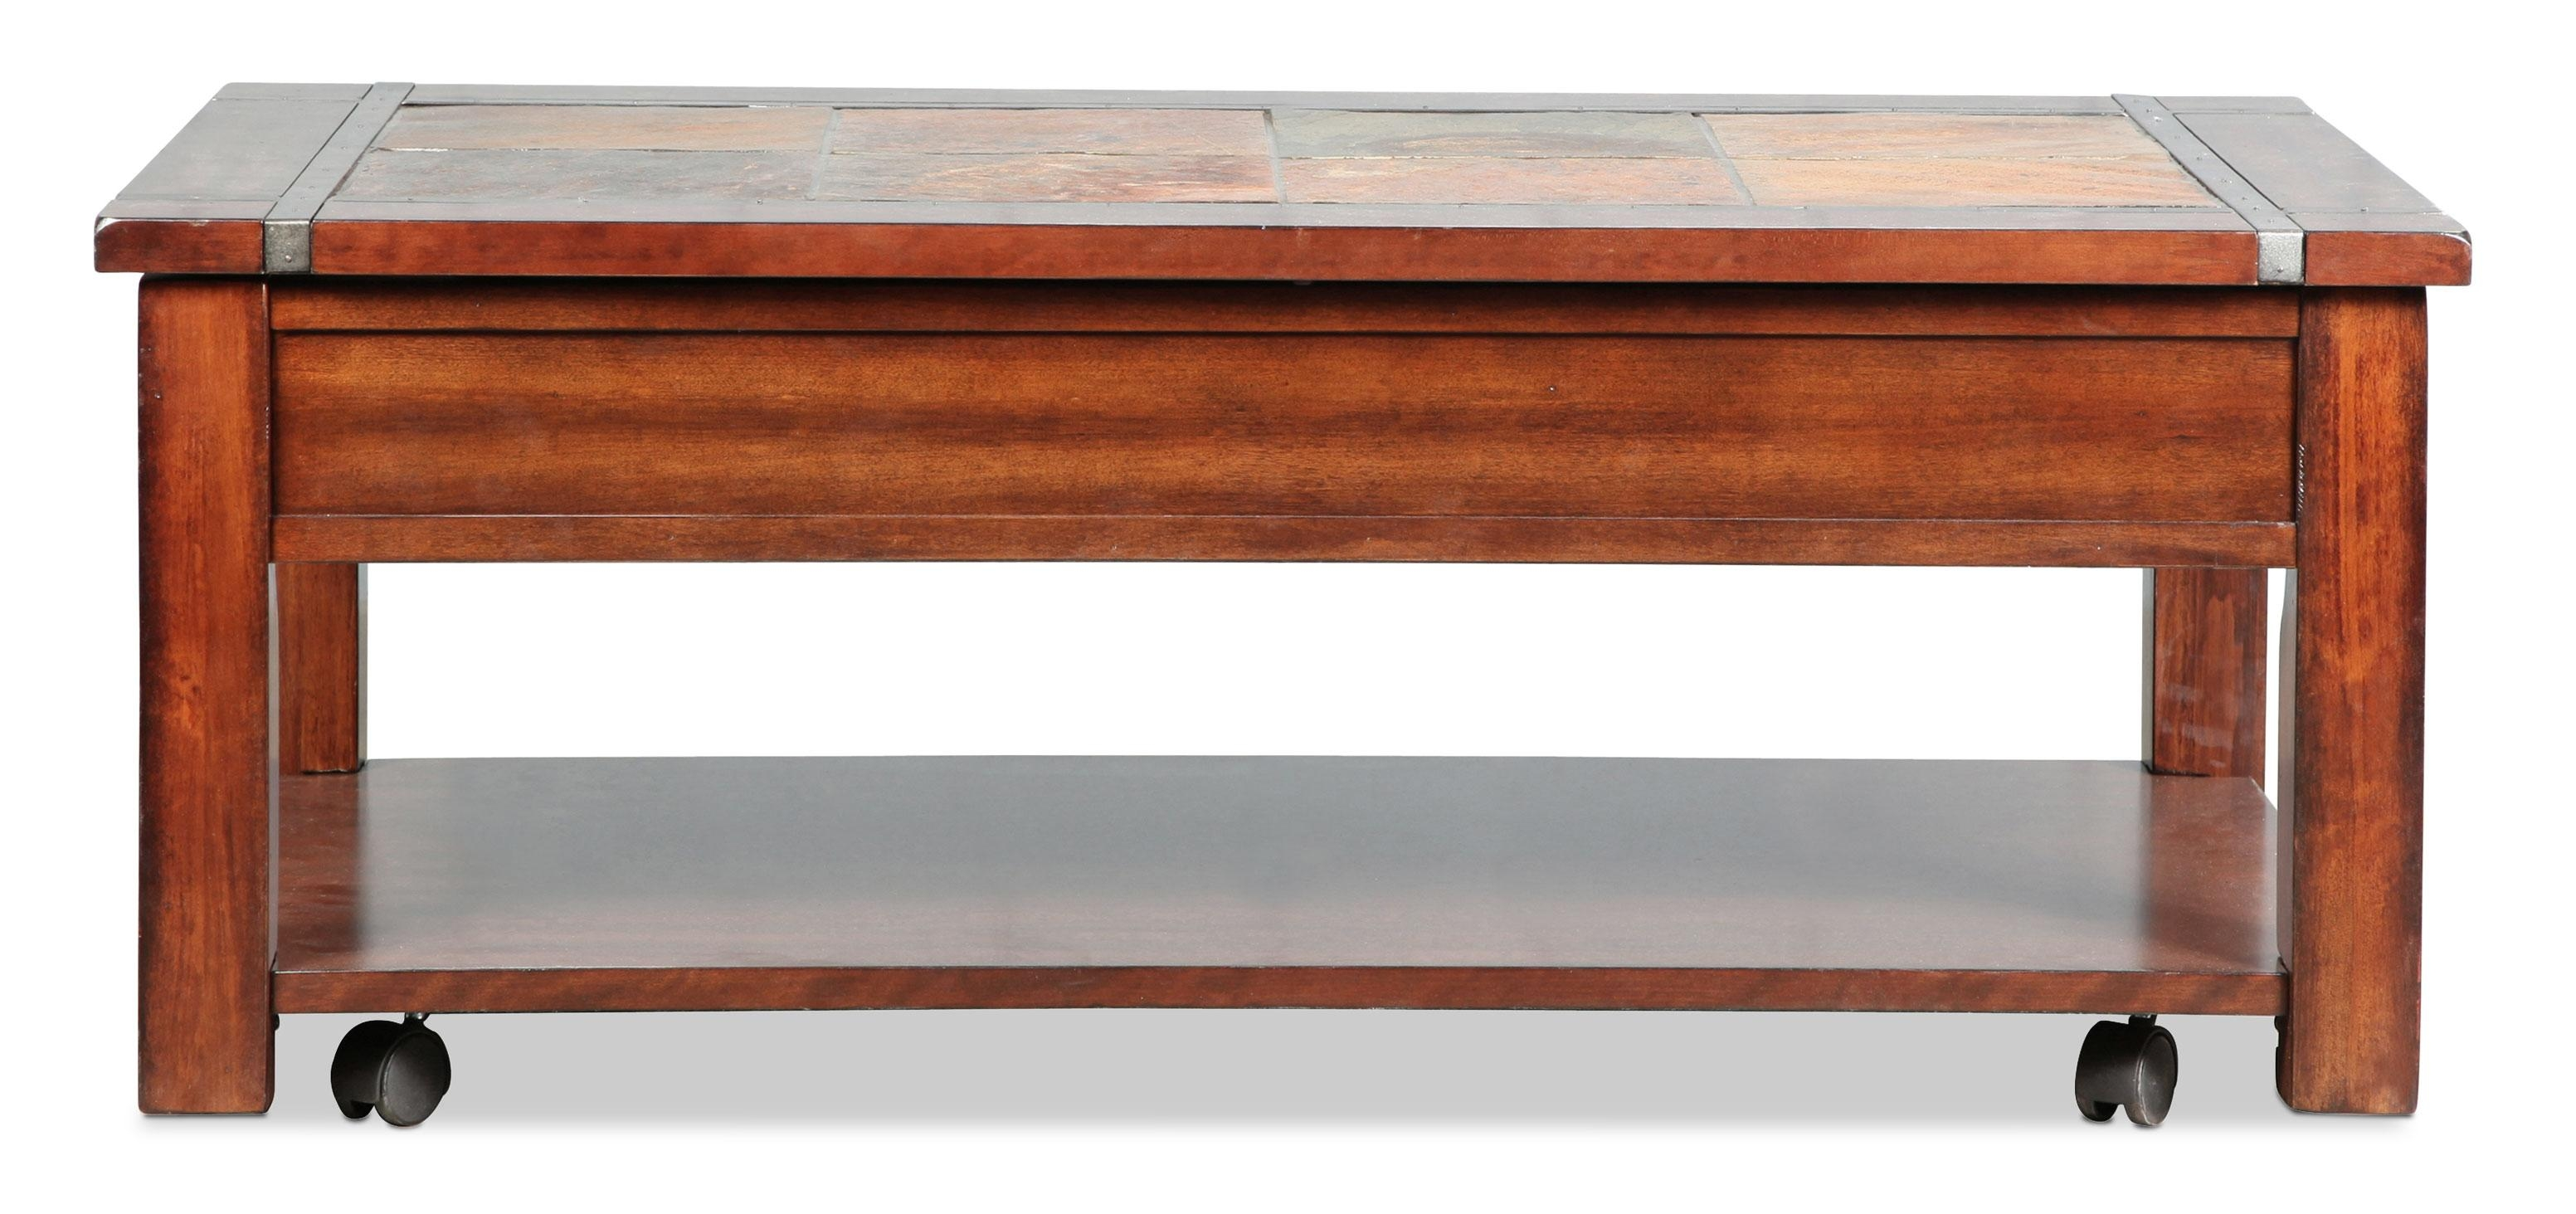 Roanoke Lift Top Coffee Table – Slate And Cherry | Levin Furniture Pertaining To Slate Sofa Tables (View 19 of 20)